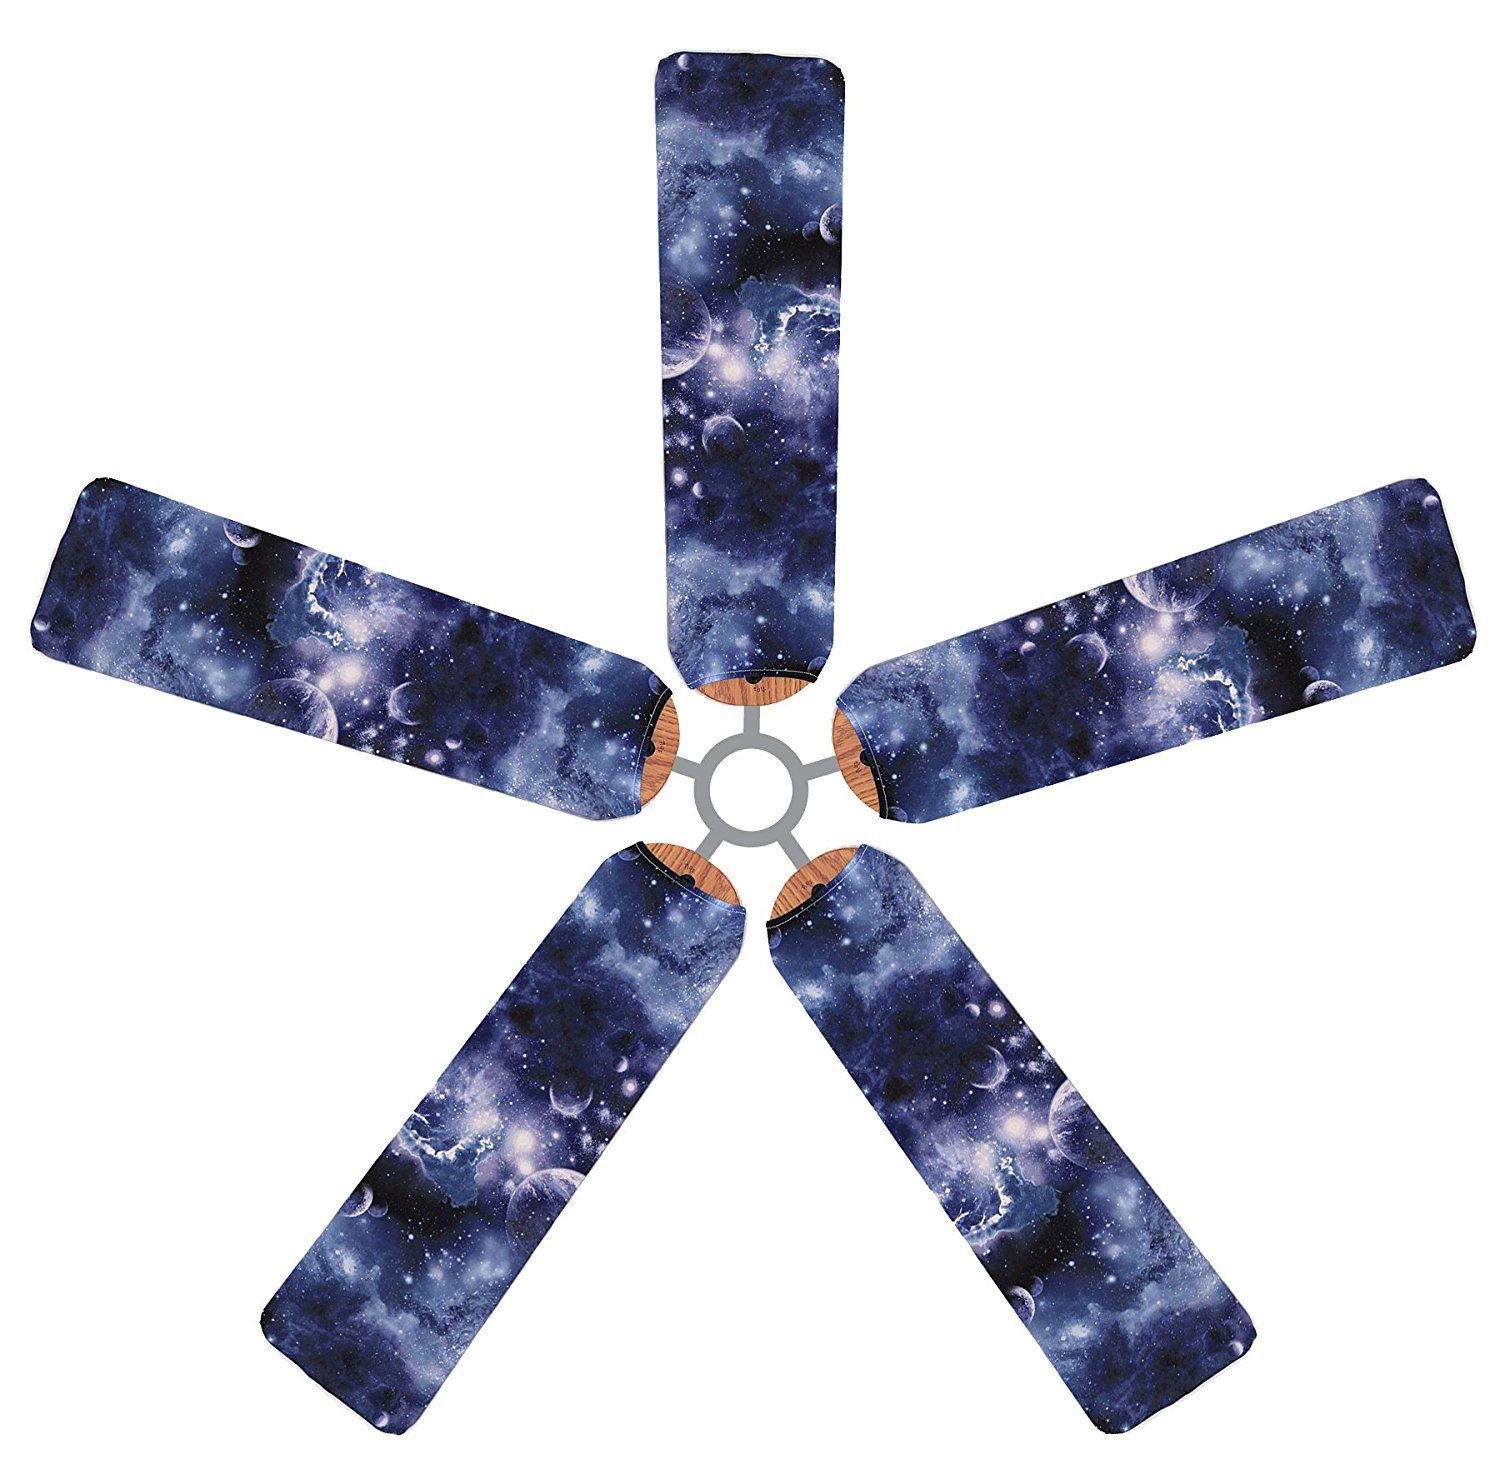 Fan Blade Designs 6500 Ceiling Fan Blade Covers Daisies Ceiling Fan Designs In Pakistan Designer C Space Themed Bedroom Outer Space Nursery Outer Space Bedroom